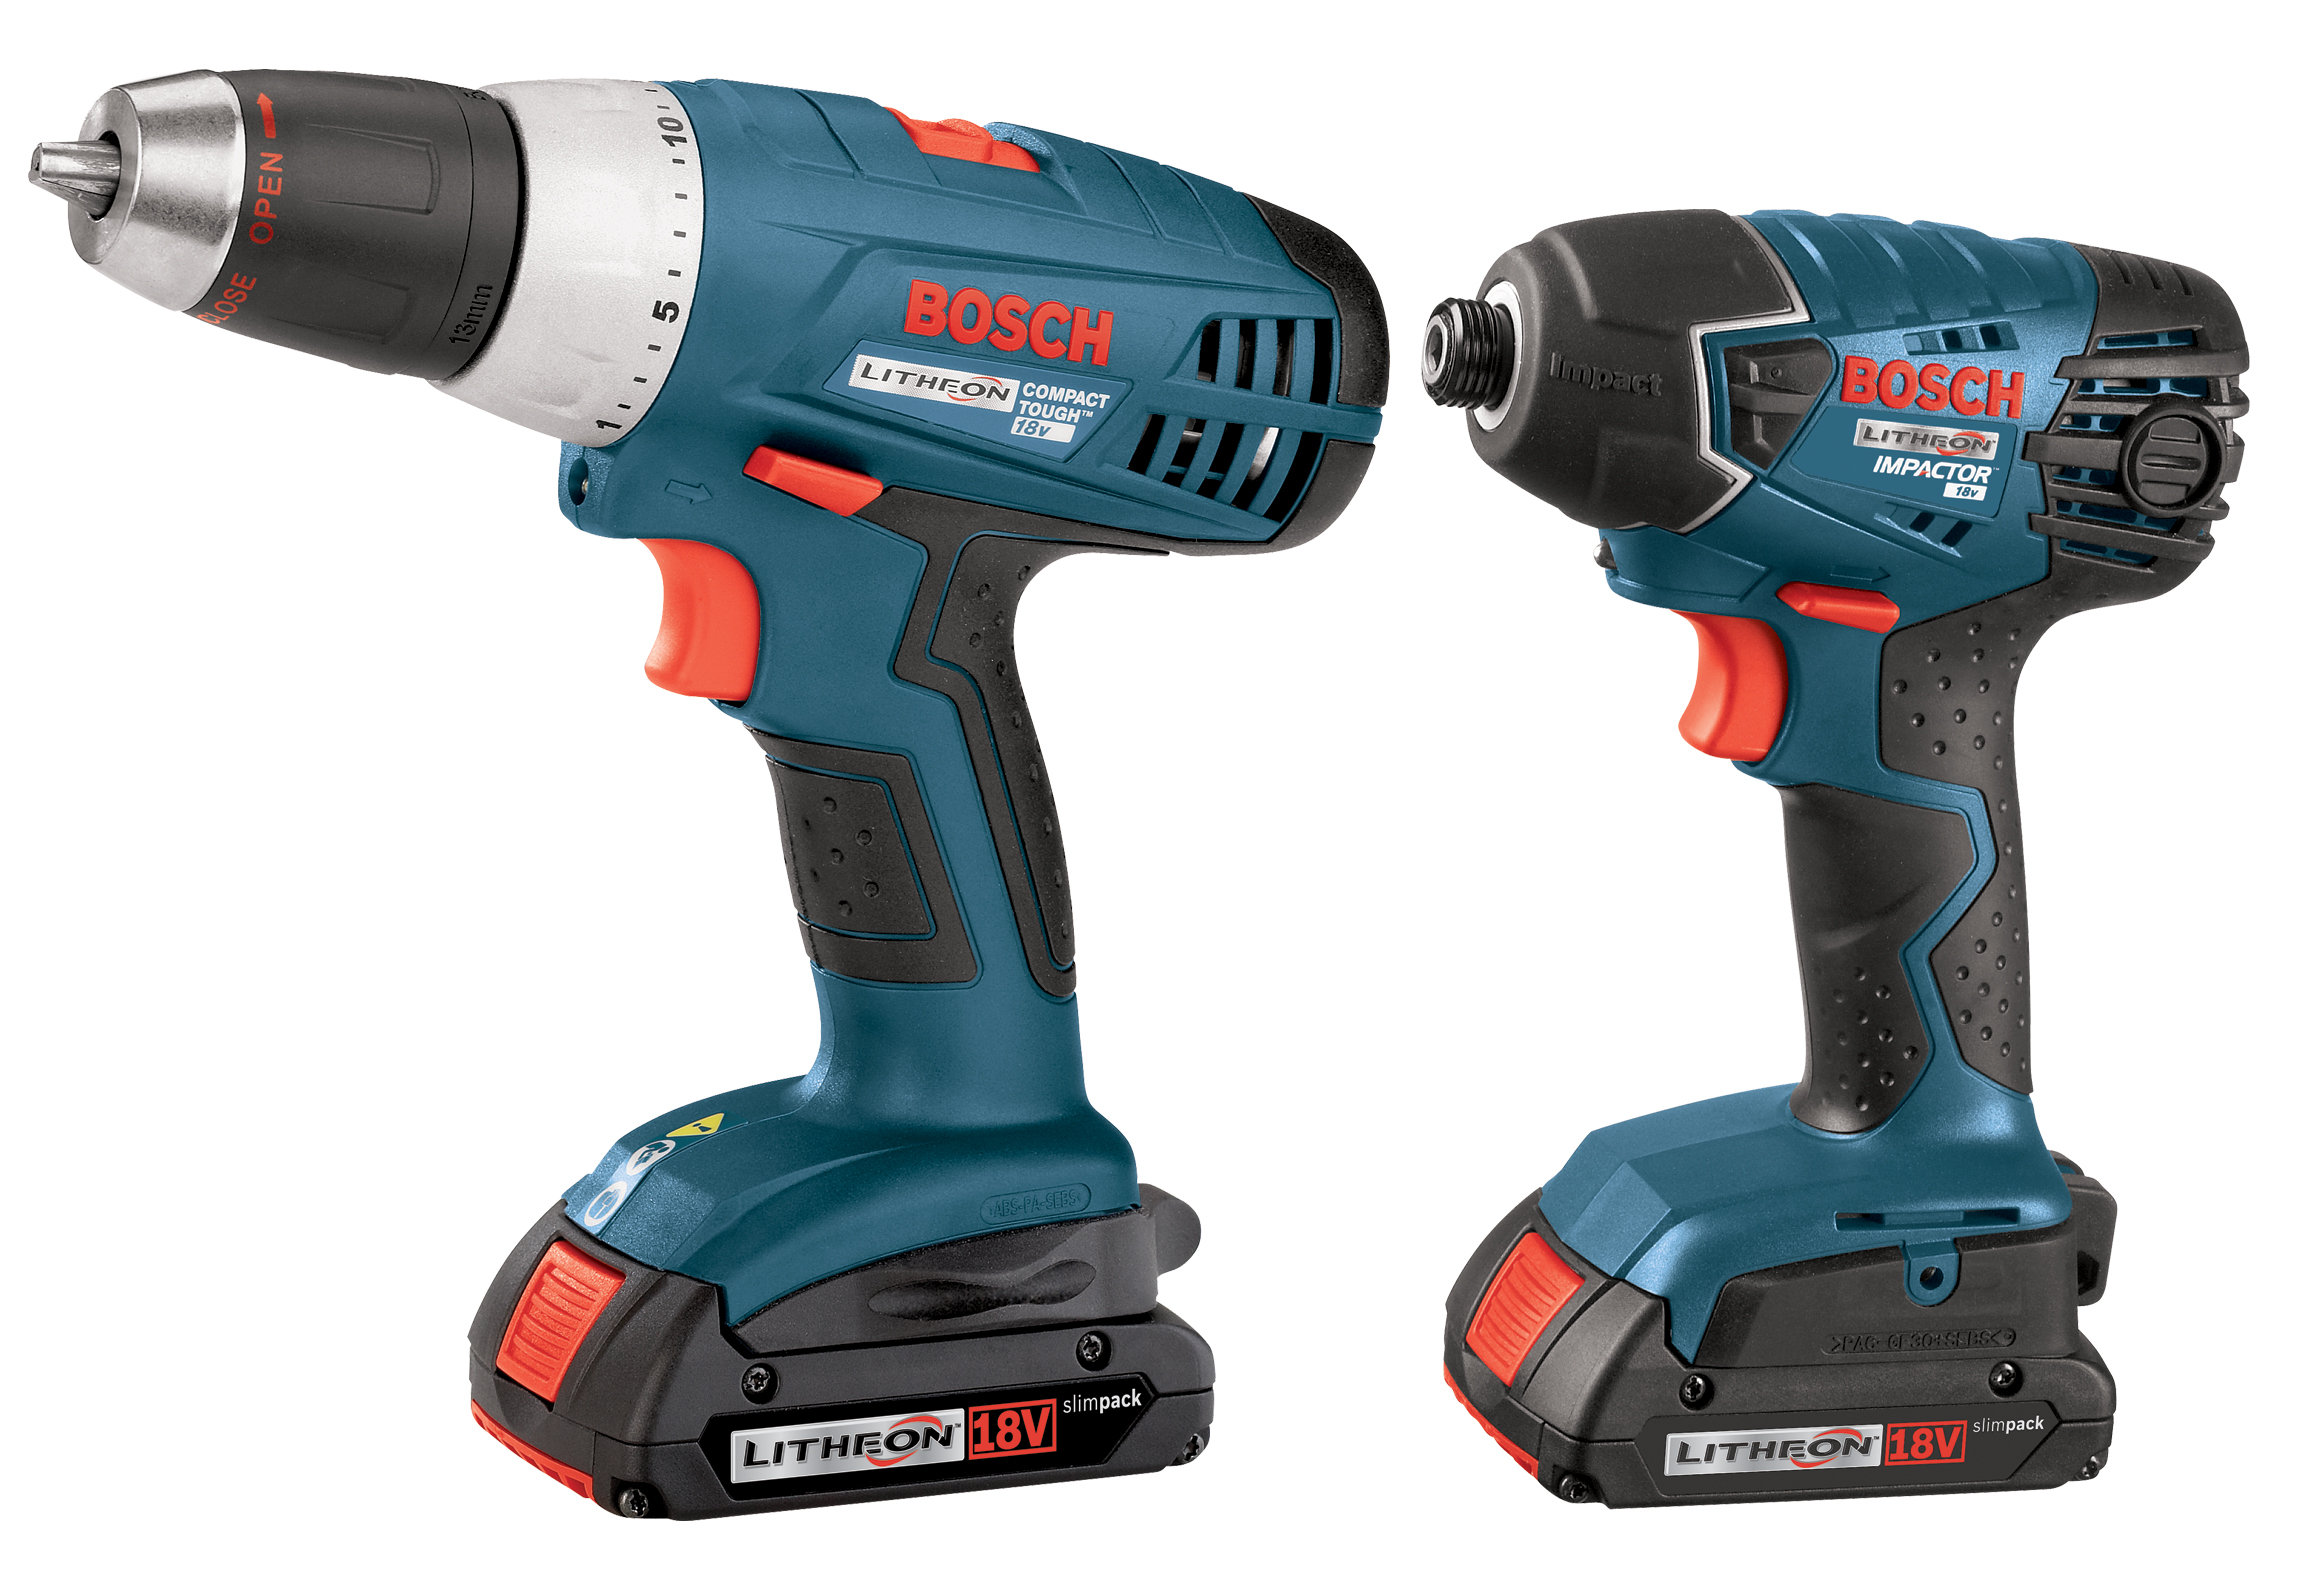 Bosch's CLPK23-180 18-volt lithium-ion drill and impact driver combo